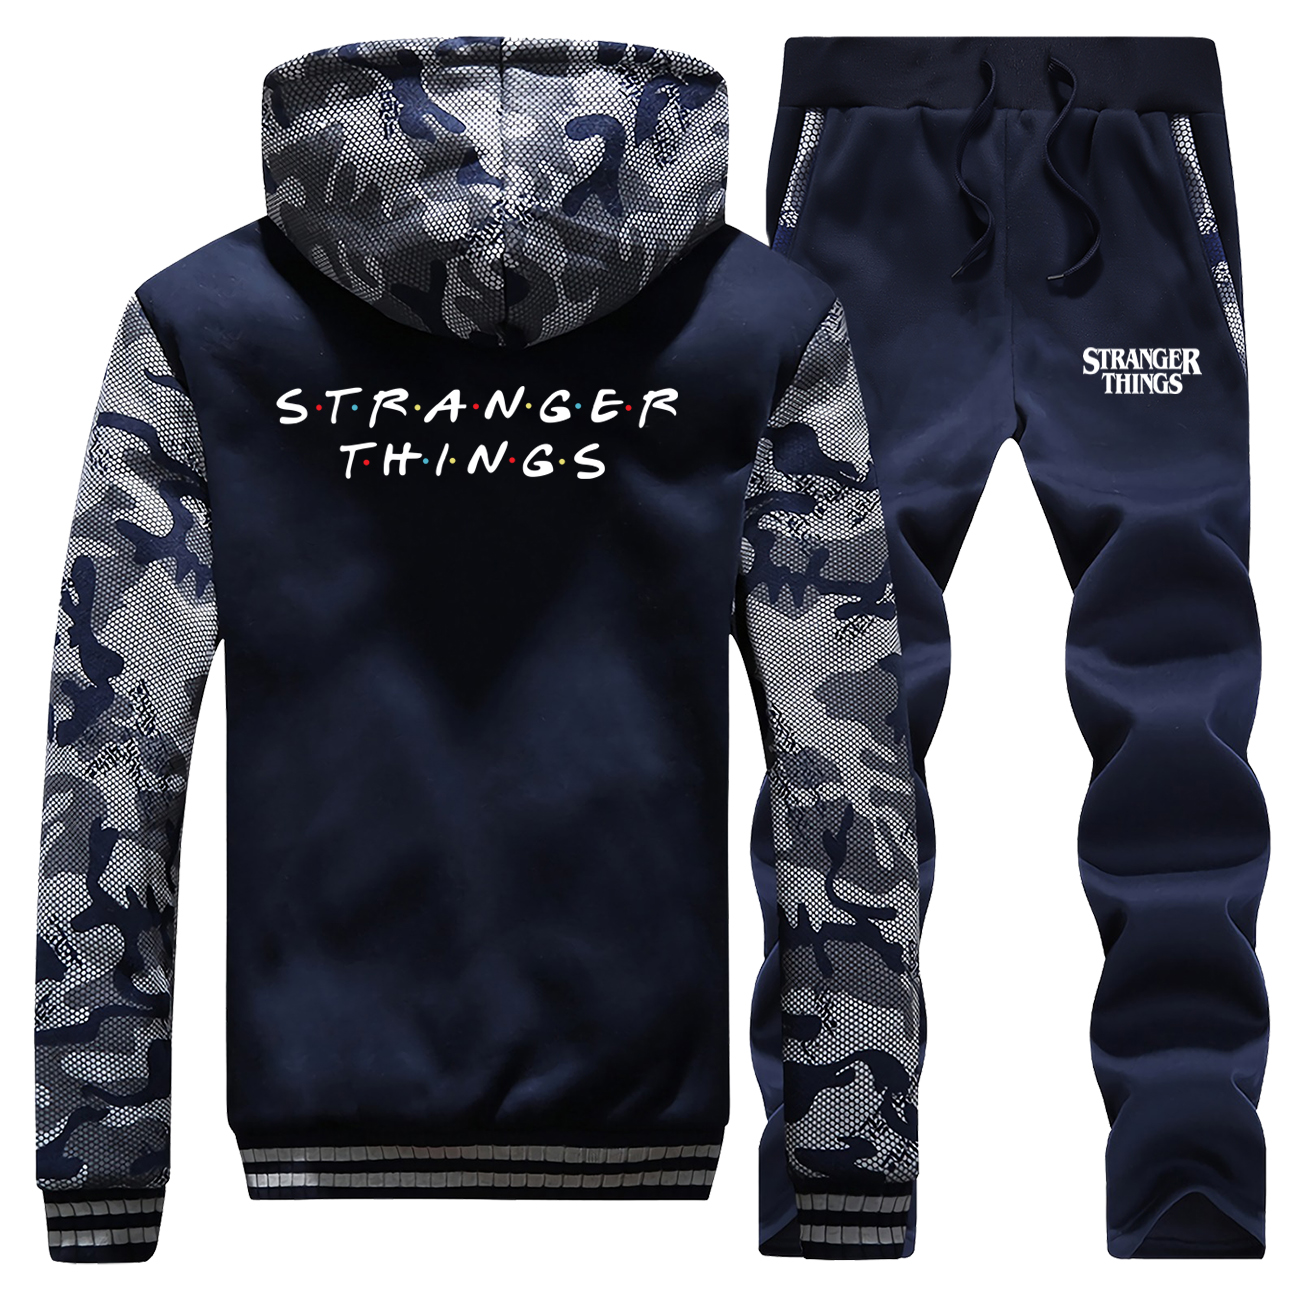 Stranger Things Tracksuits Jacket Pant Set Men Sportsuits Sweatshirt Hoodies Sweatpant Sets Suit 2 PCS Militray Coat Sportswear